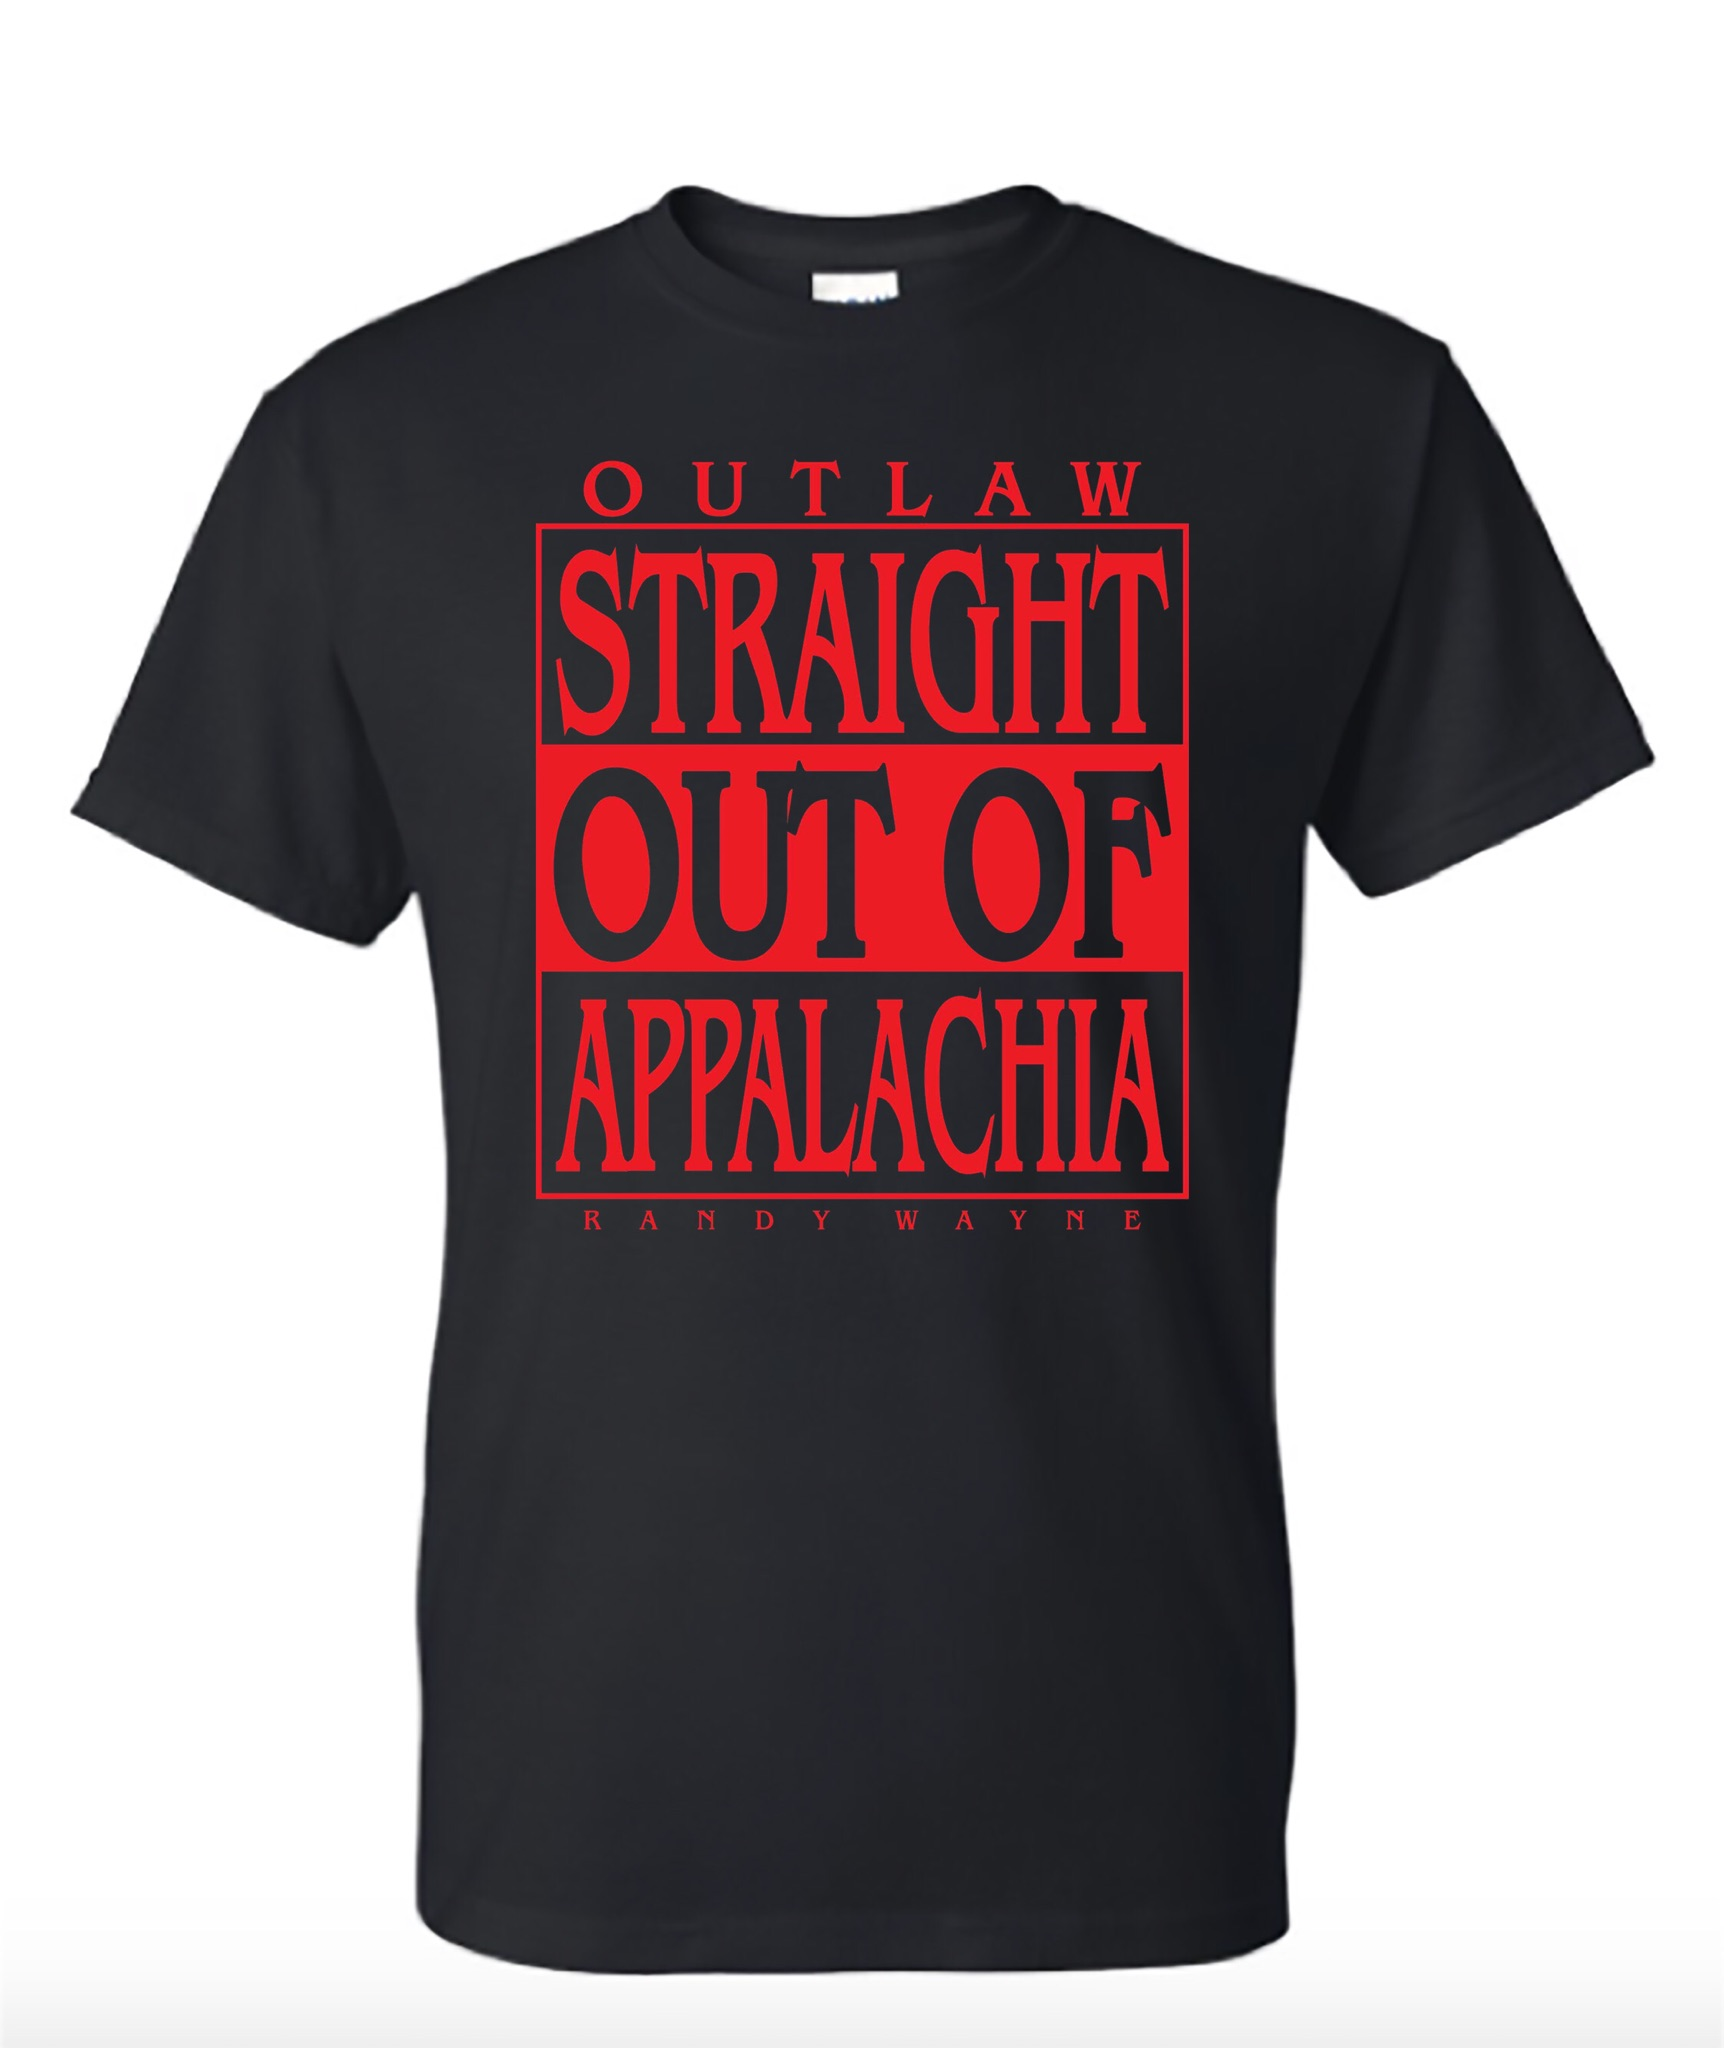 Straight out of Appalachia